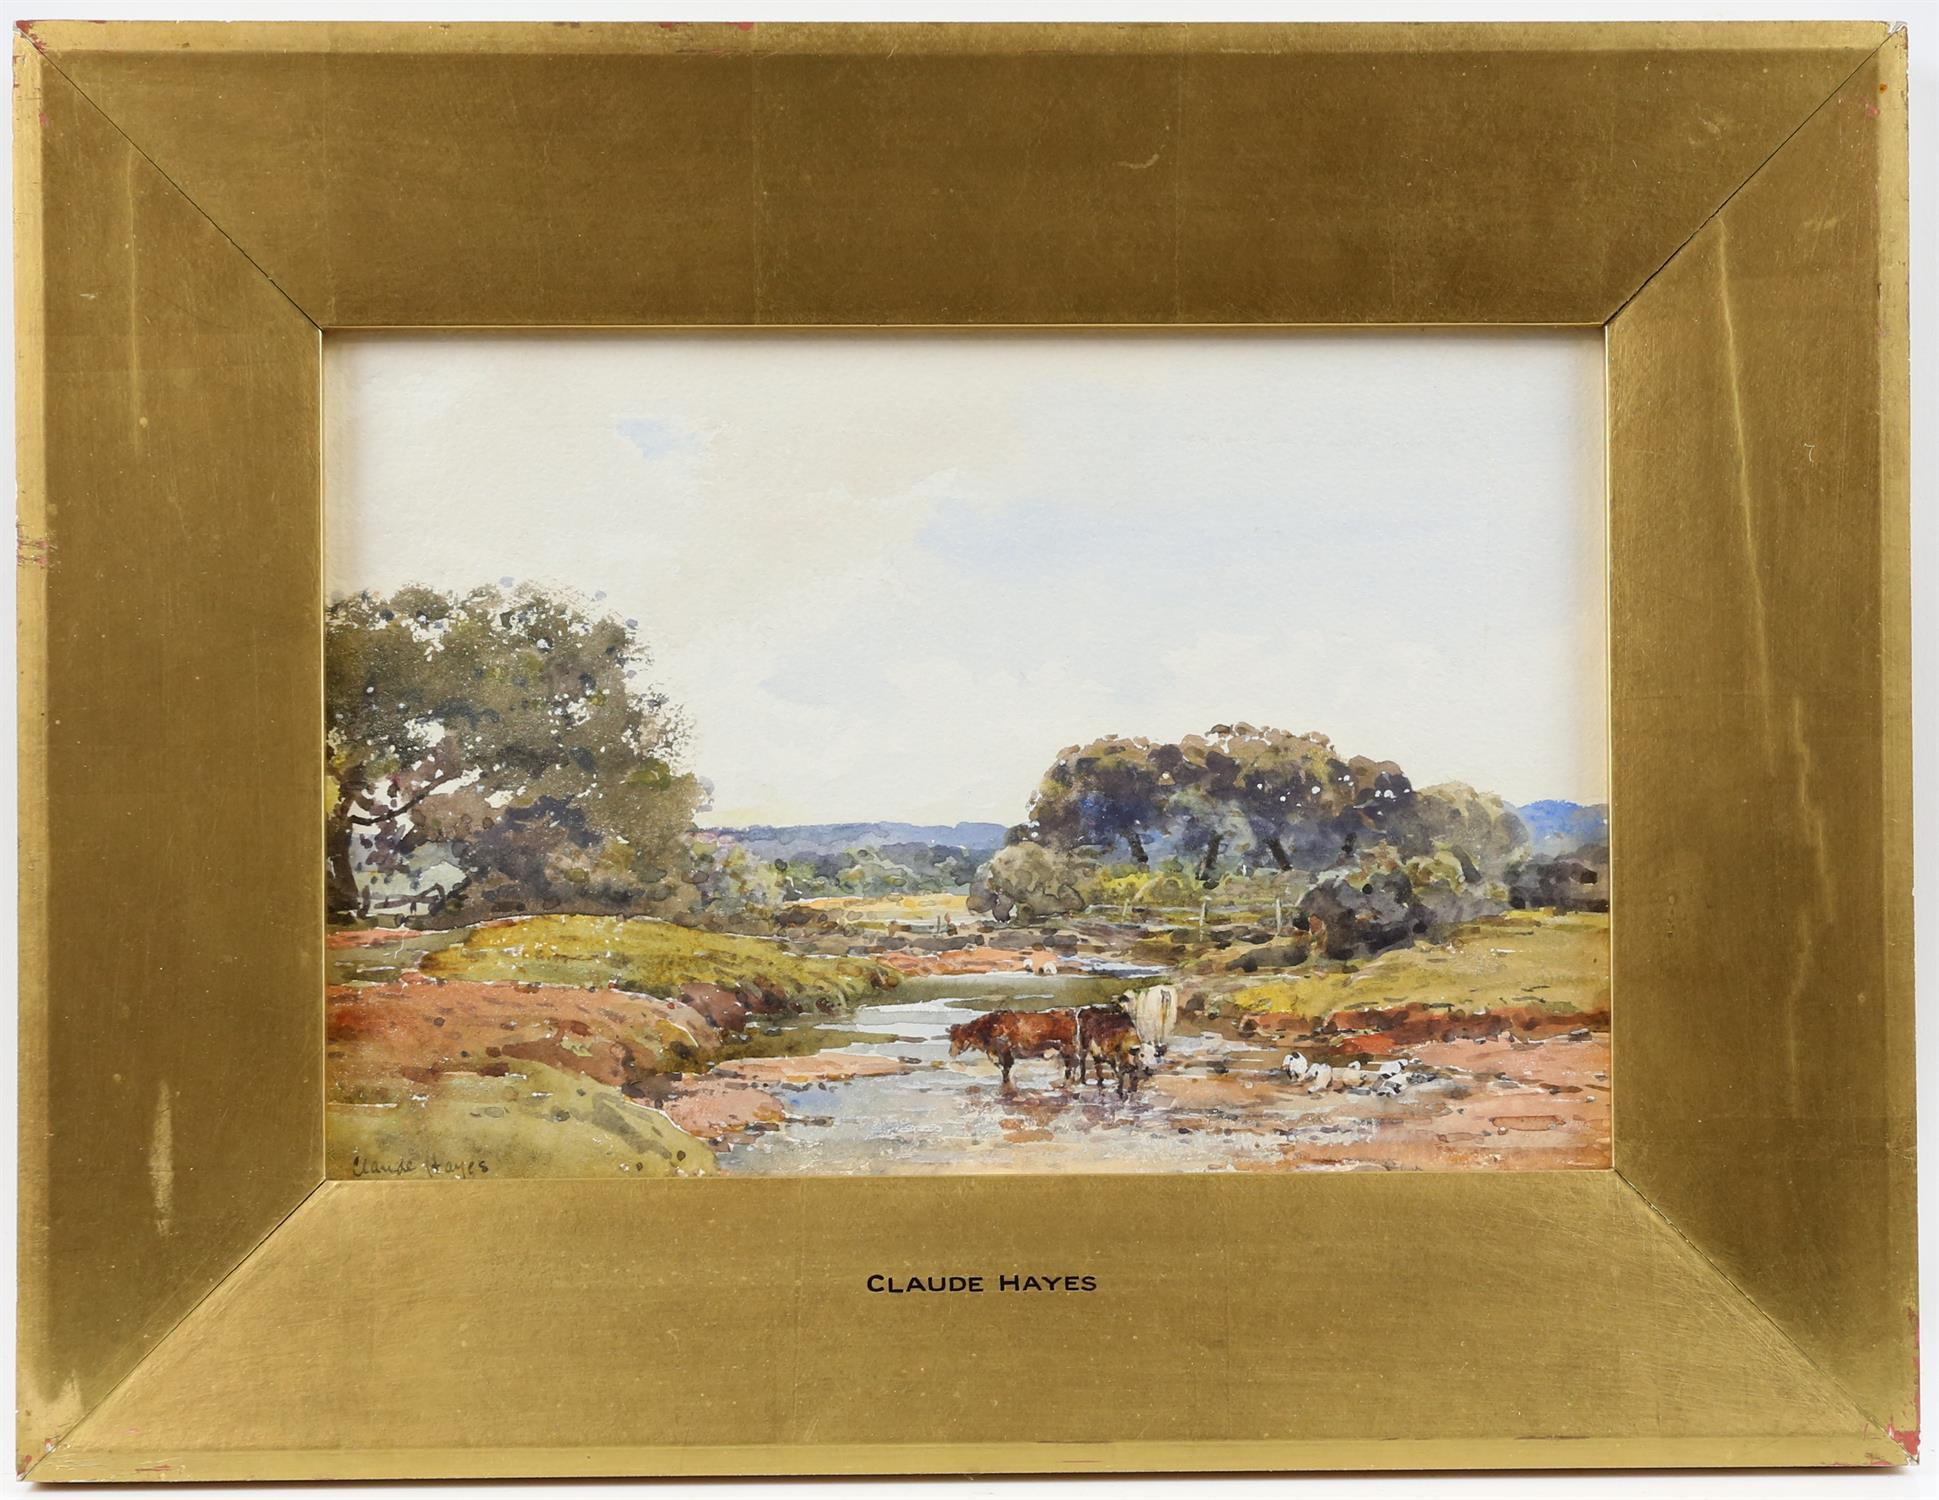 Claude Hayes (British, 1852-1922), landscape with cattle watering at a stream, signed, watercolour, - Image 2 of 4